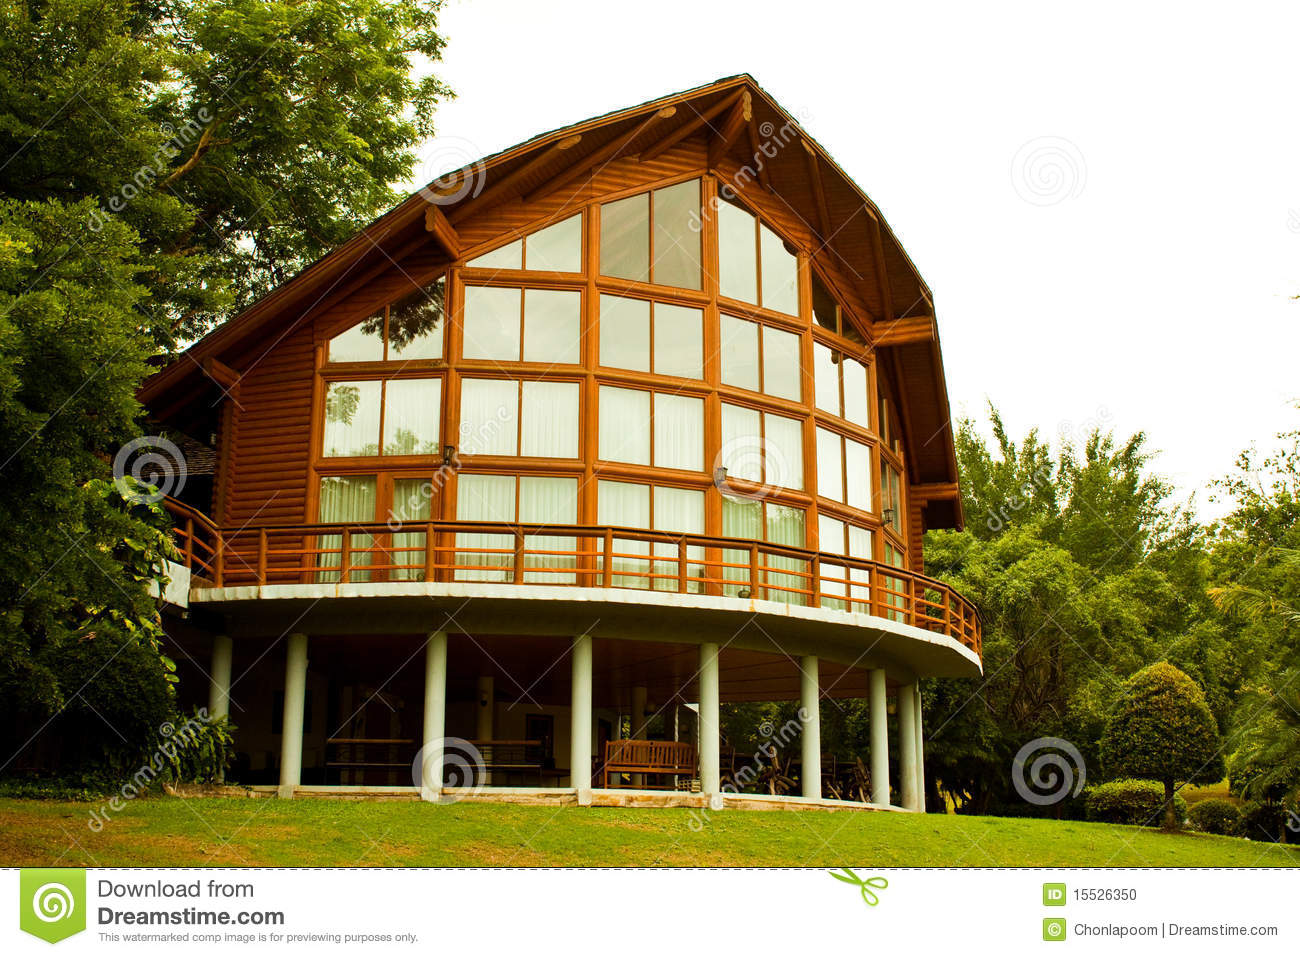 Glass House Stock Photo - Image: 15526350 - ^